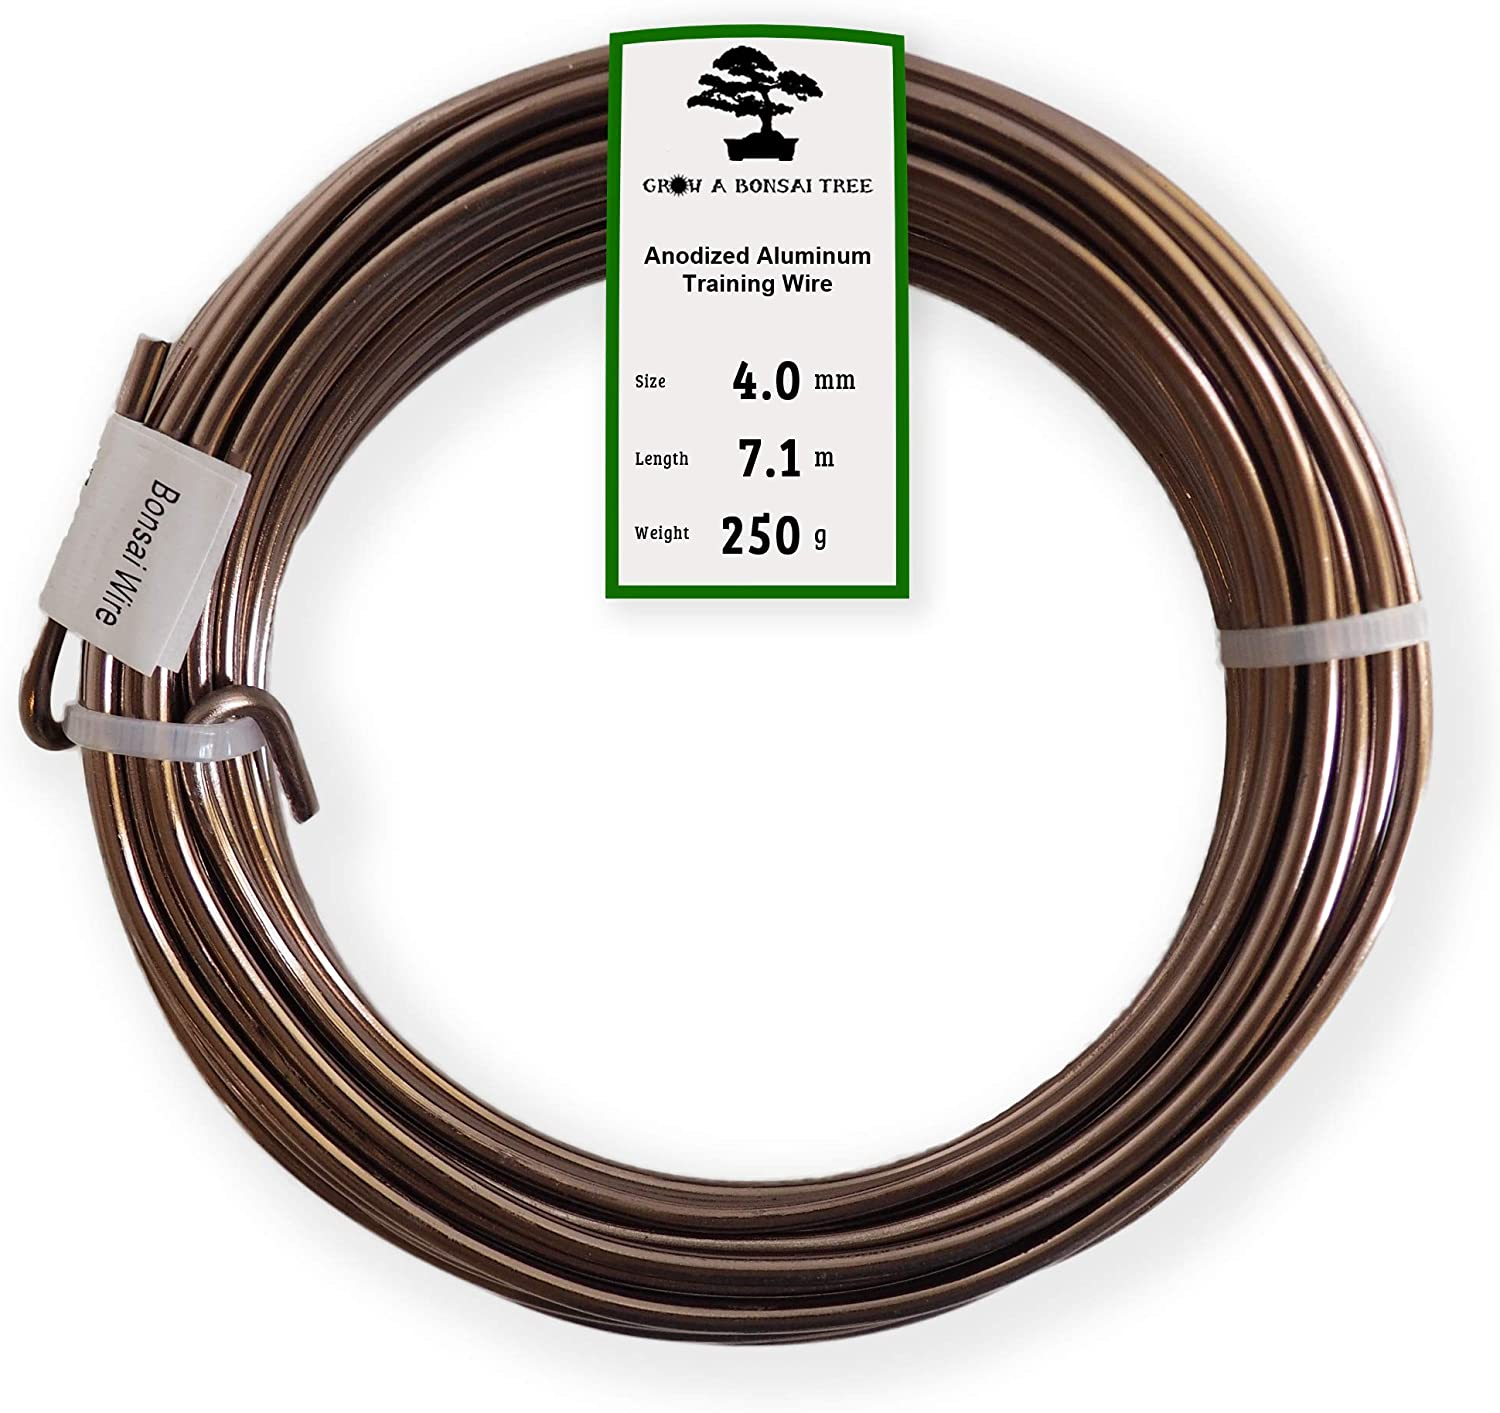 1.0 mm, 1.5 mm, 2.0 mm bobotron 9 rolls of bonsai wires made of anodised aluminium bonsai training wire with 3 sizes total length 147 feet black .